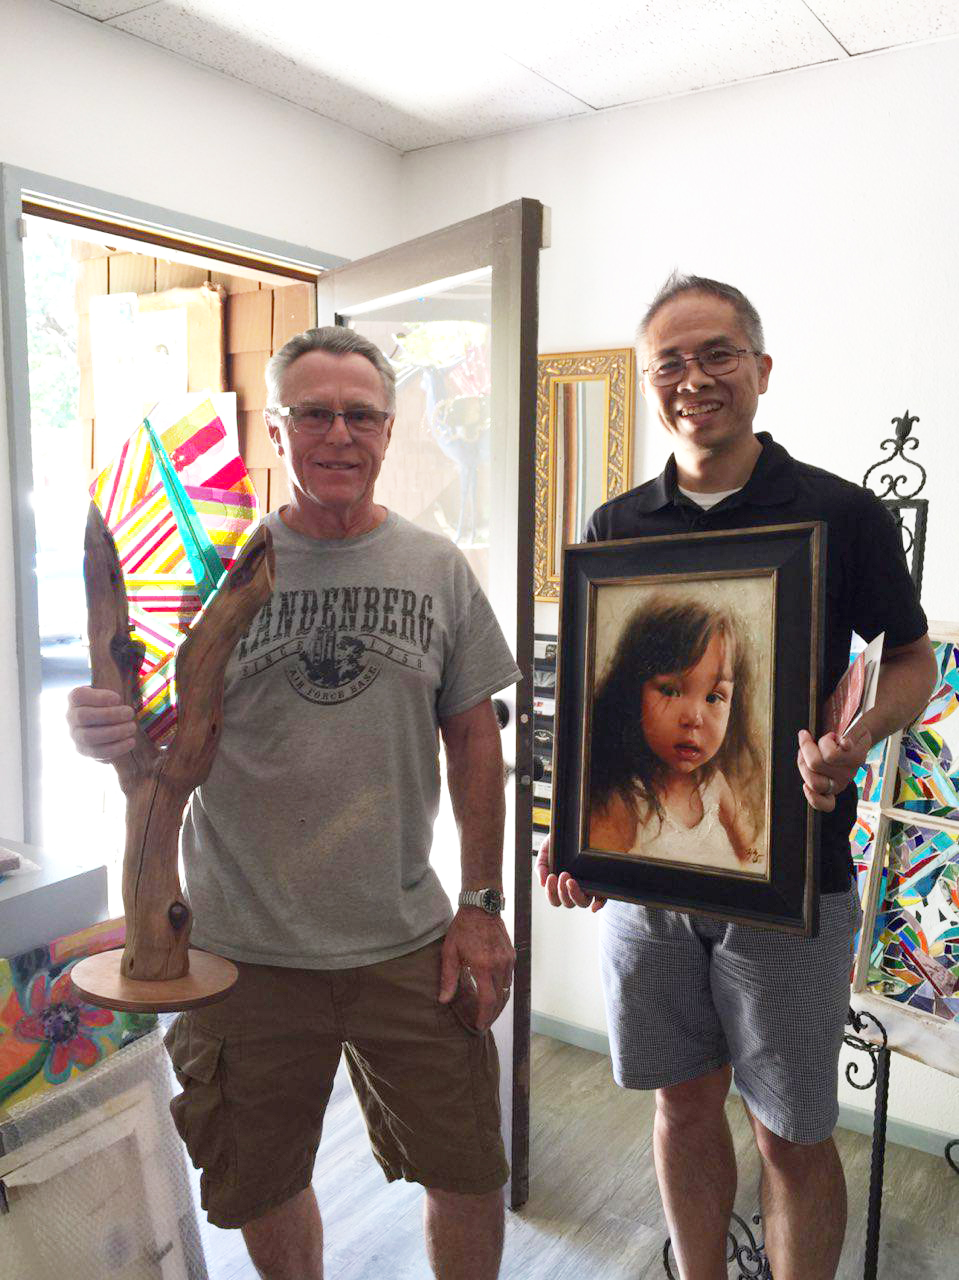 olivet-university-osad-associate-dean-wins-best-of-show-award-at-art-alliance-exhibition